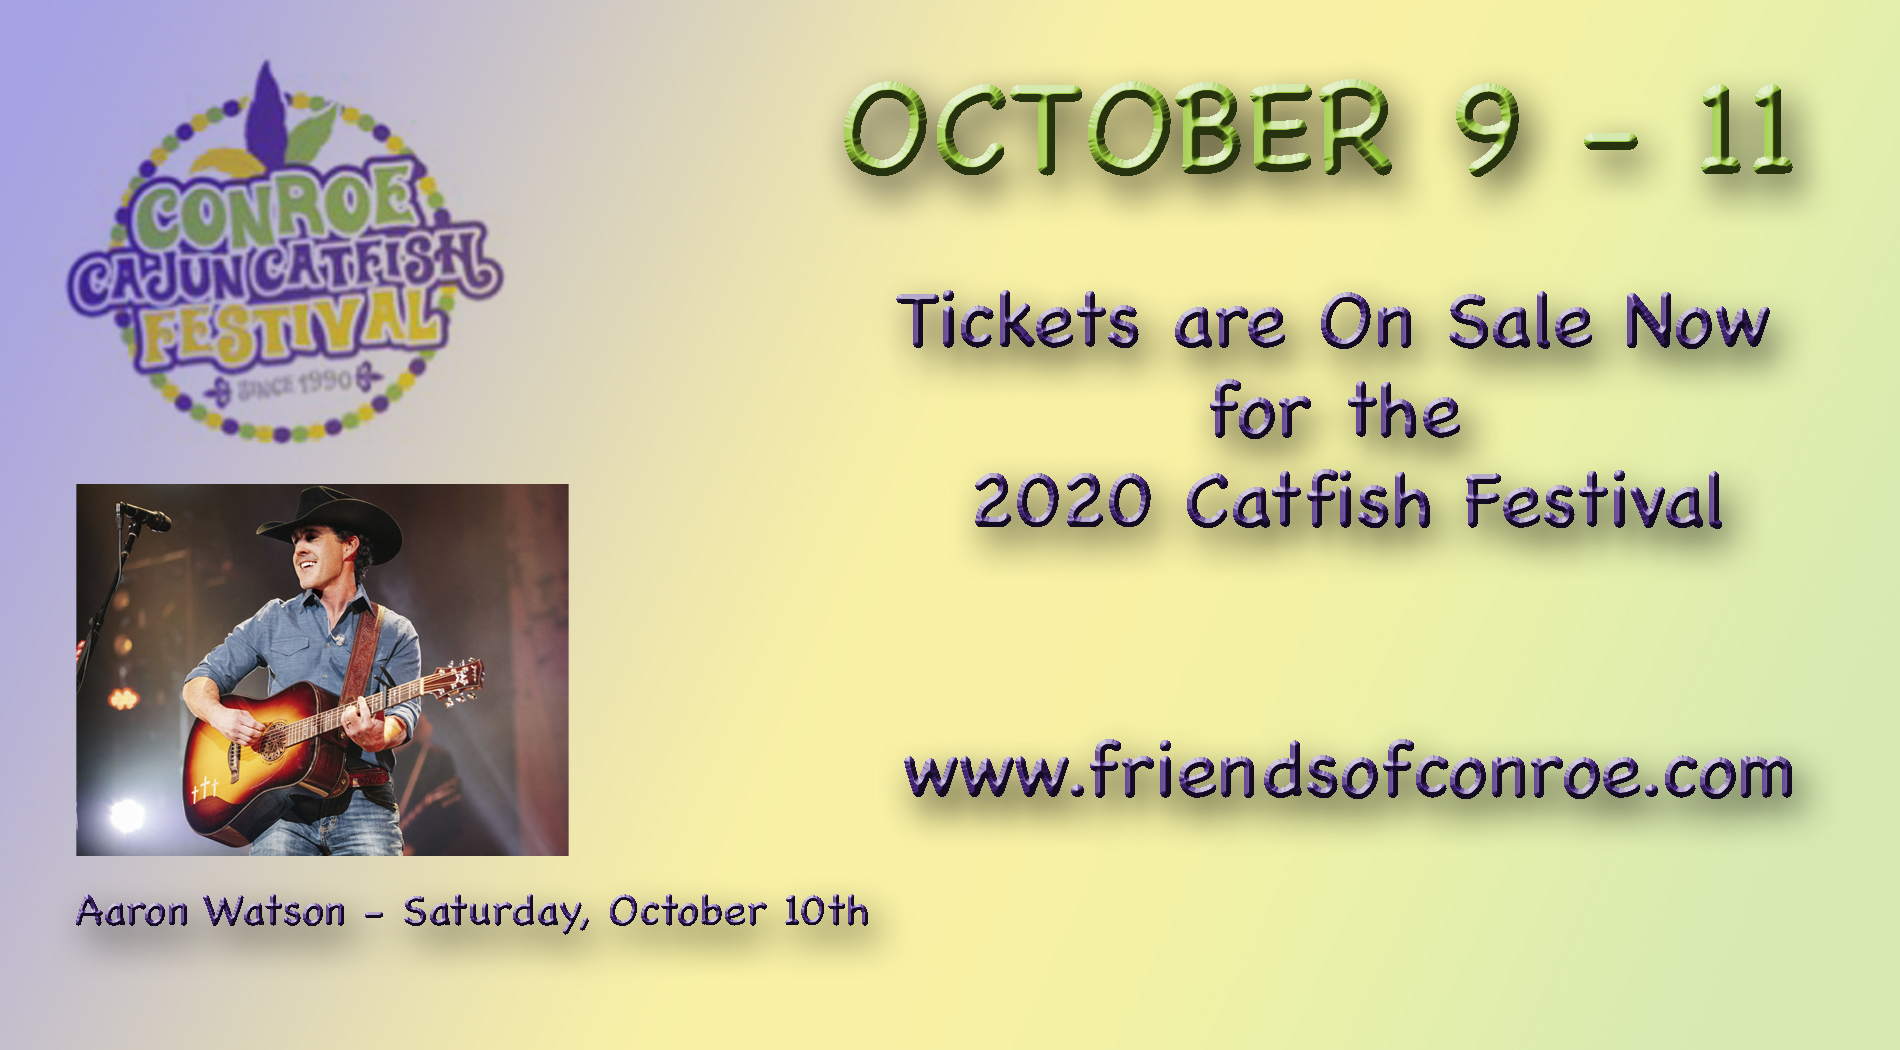 CatfishFestivel